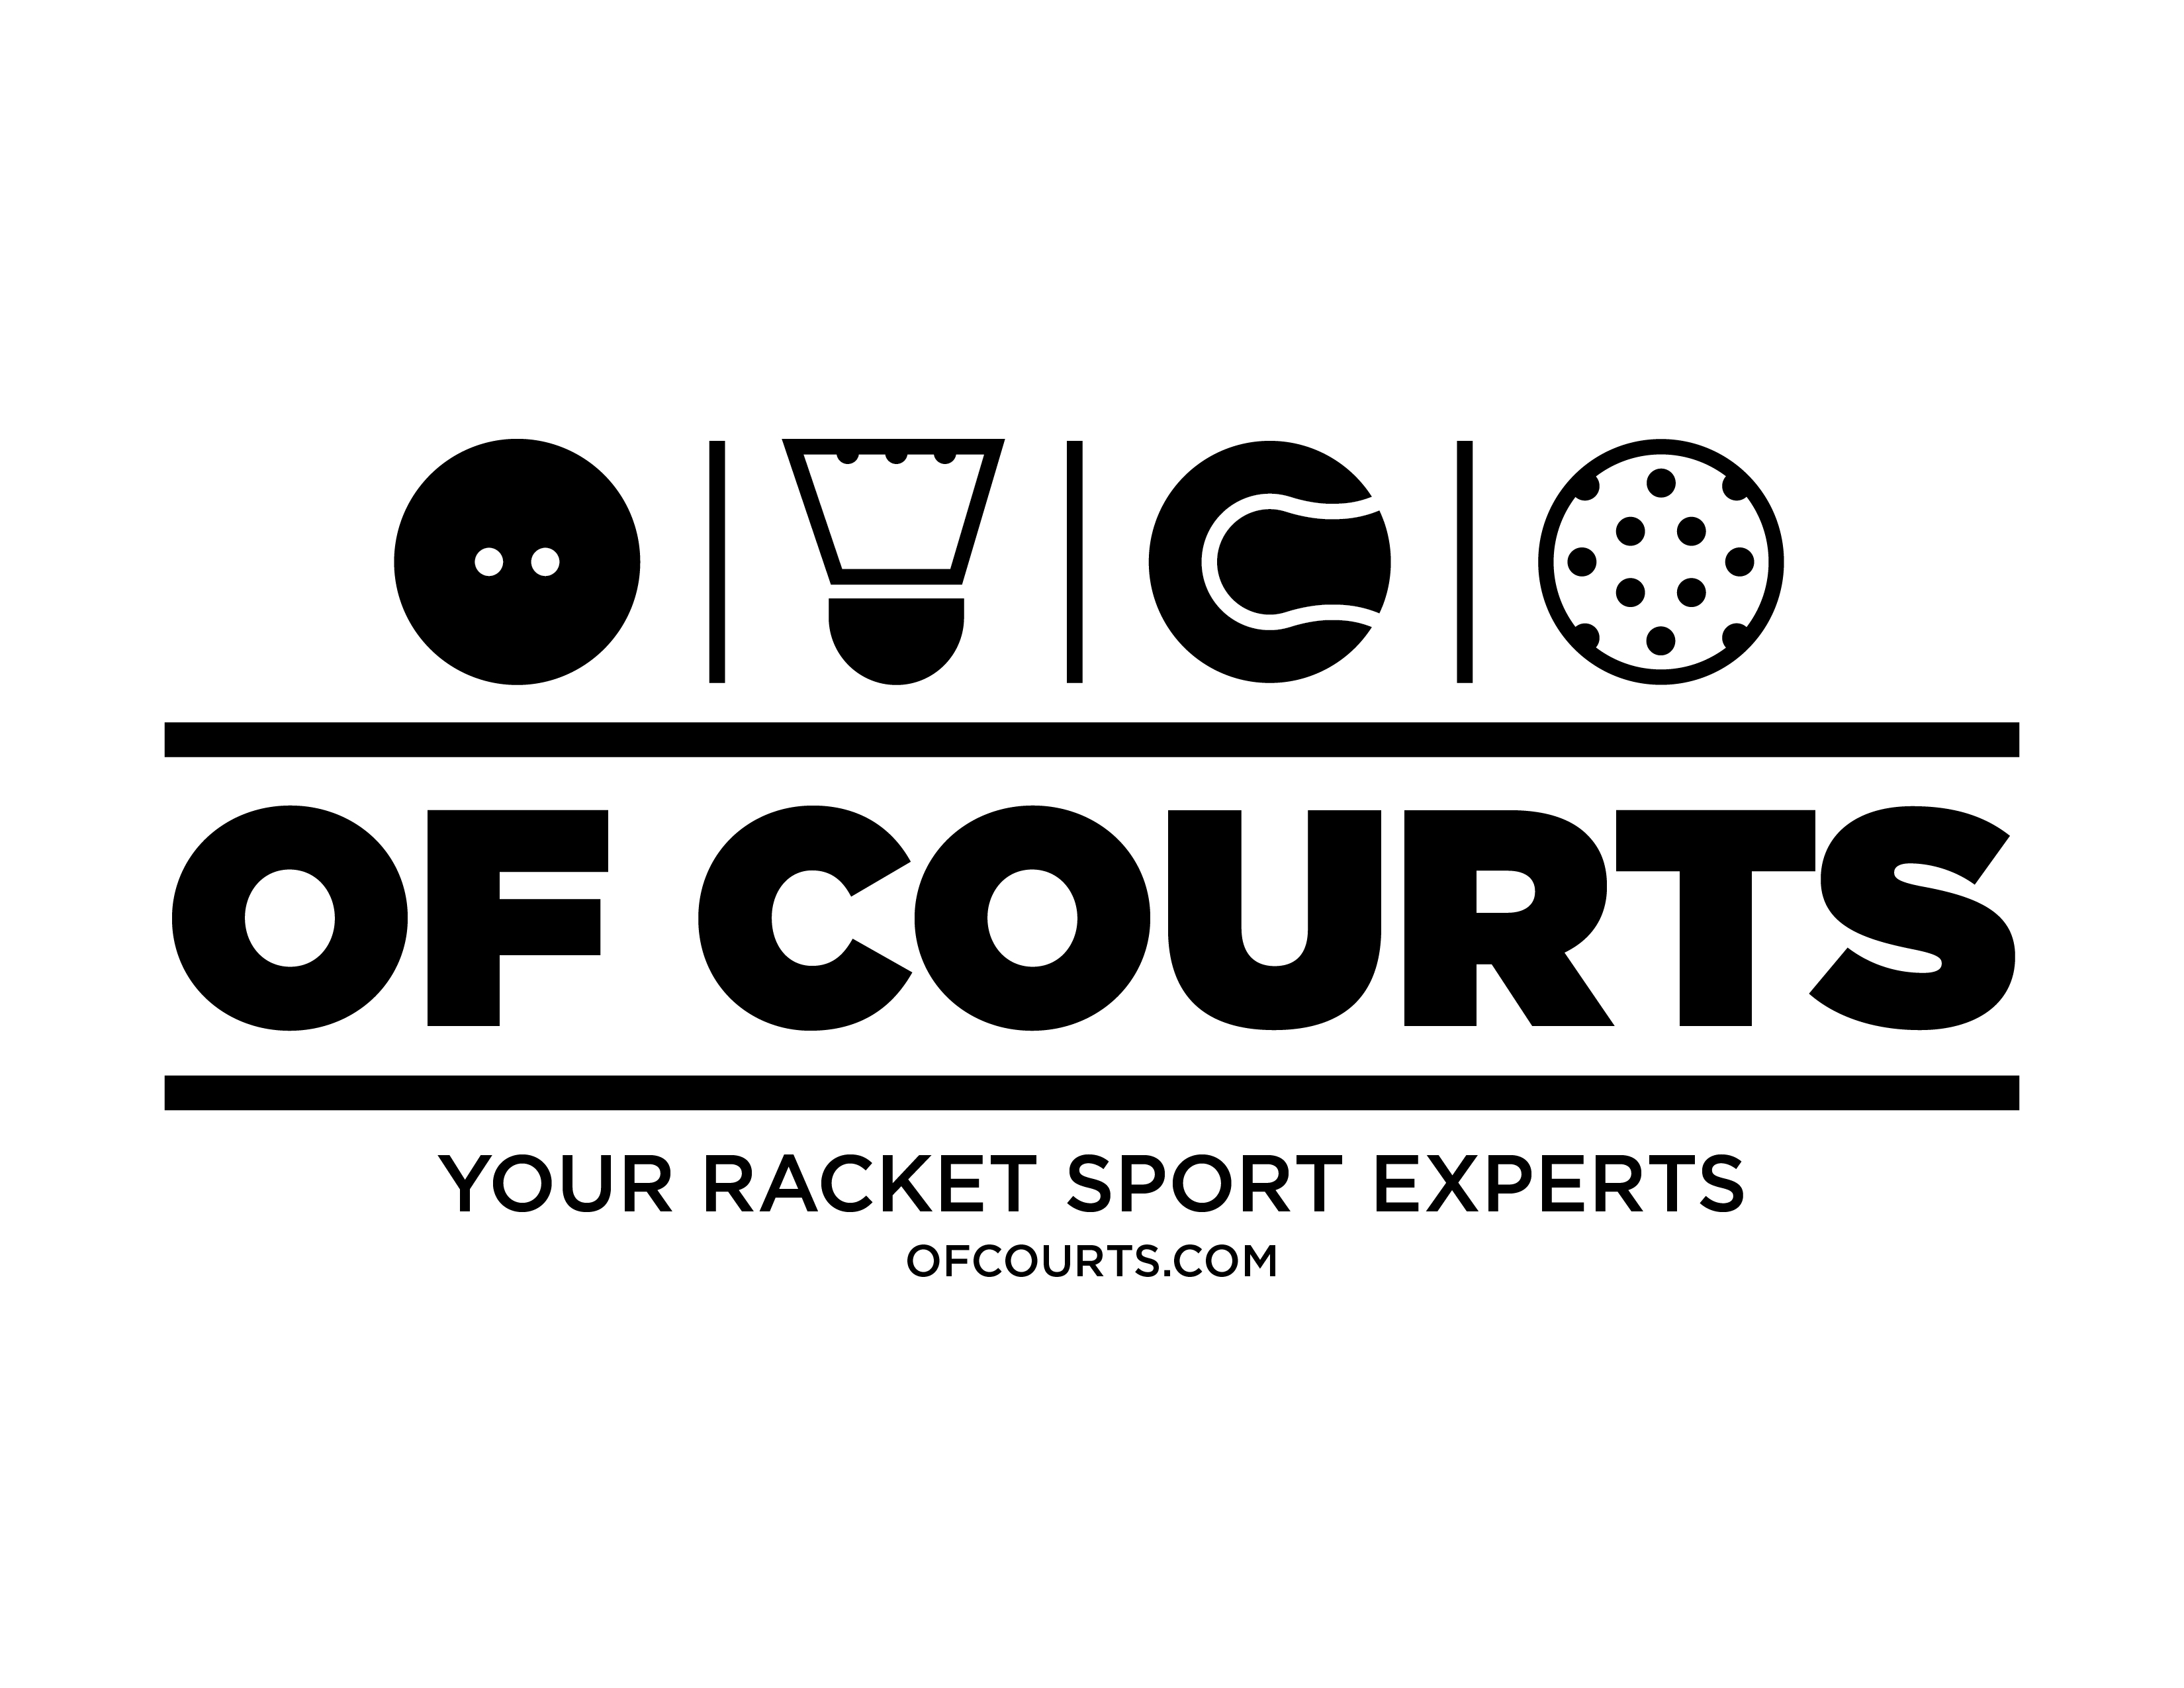 Of Courts